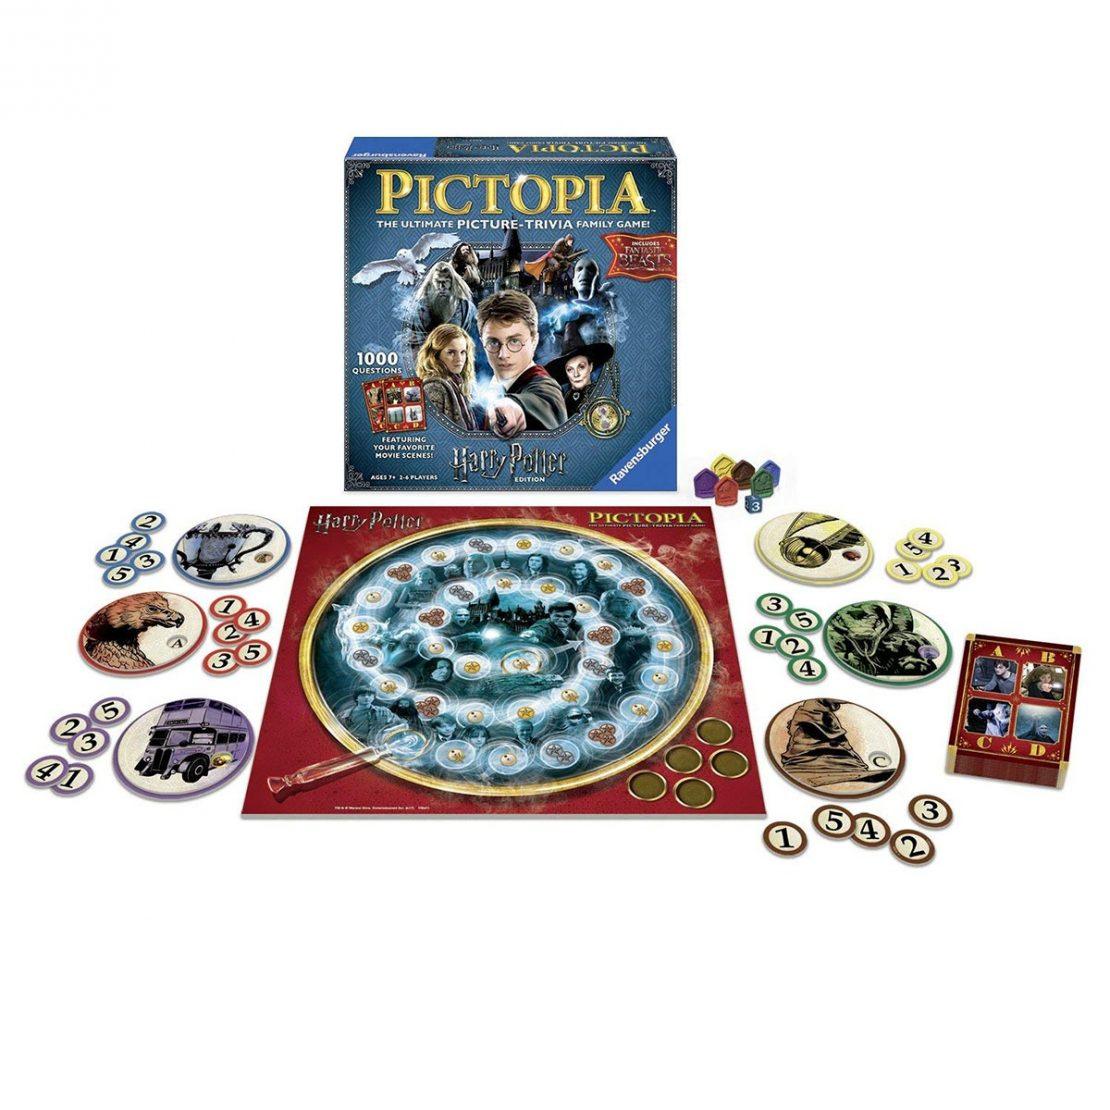 Harry Potter Pictopia Contents